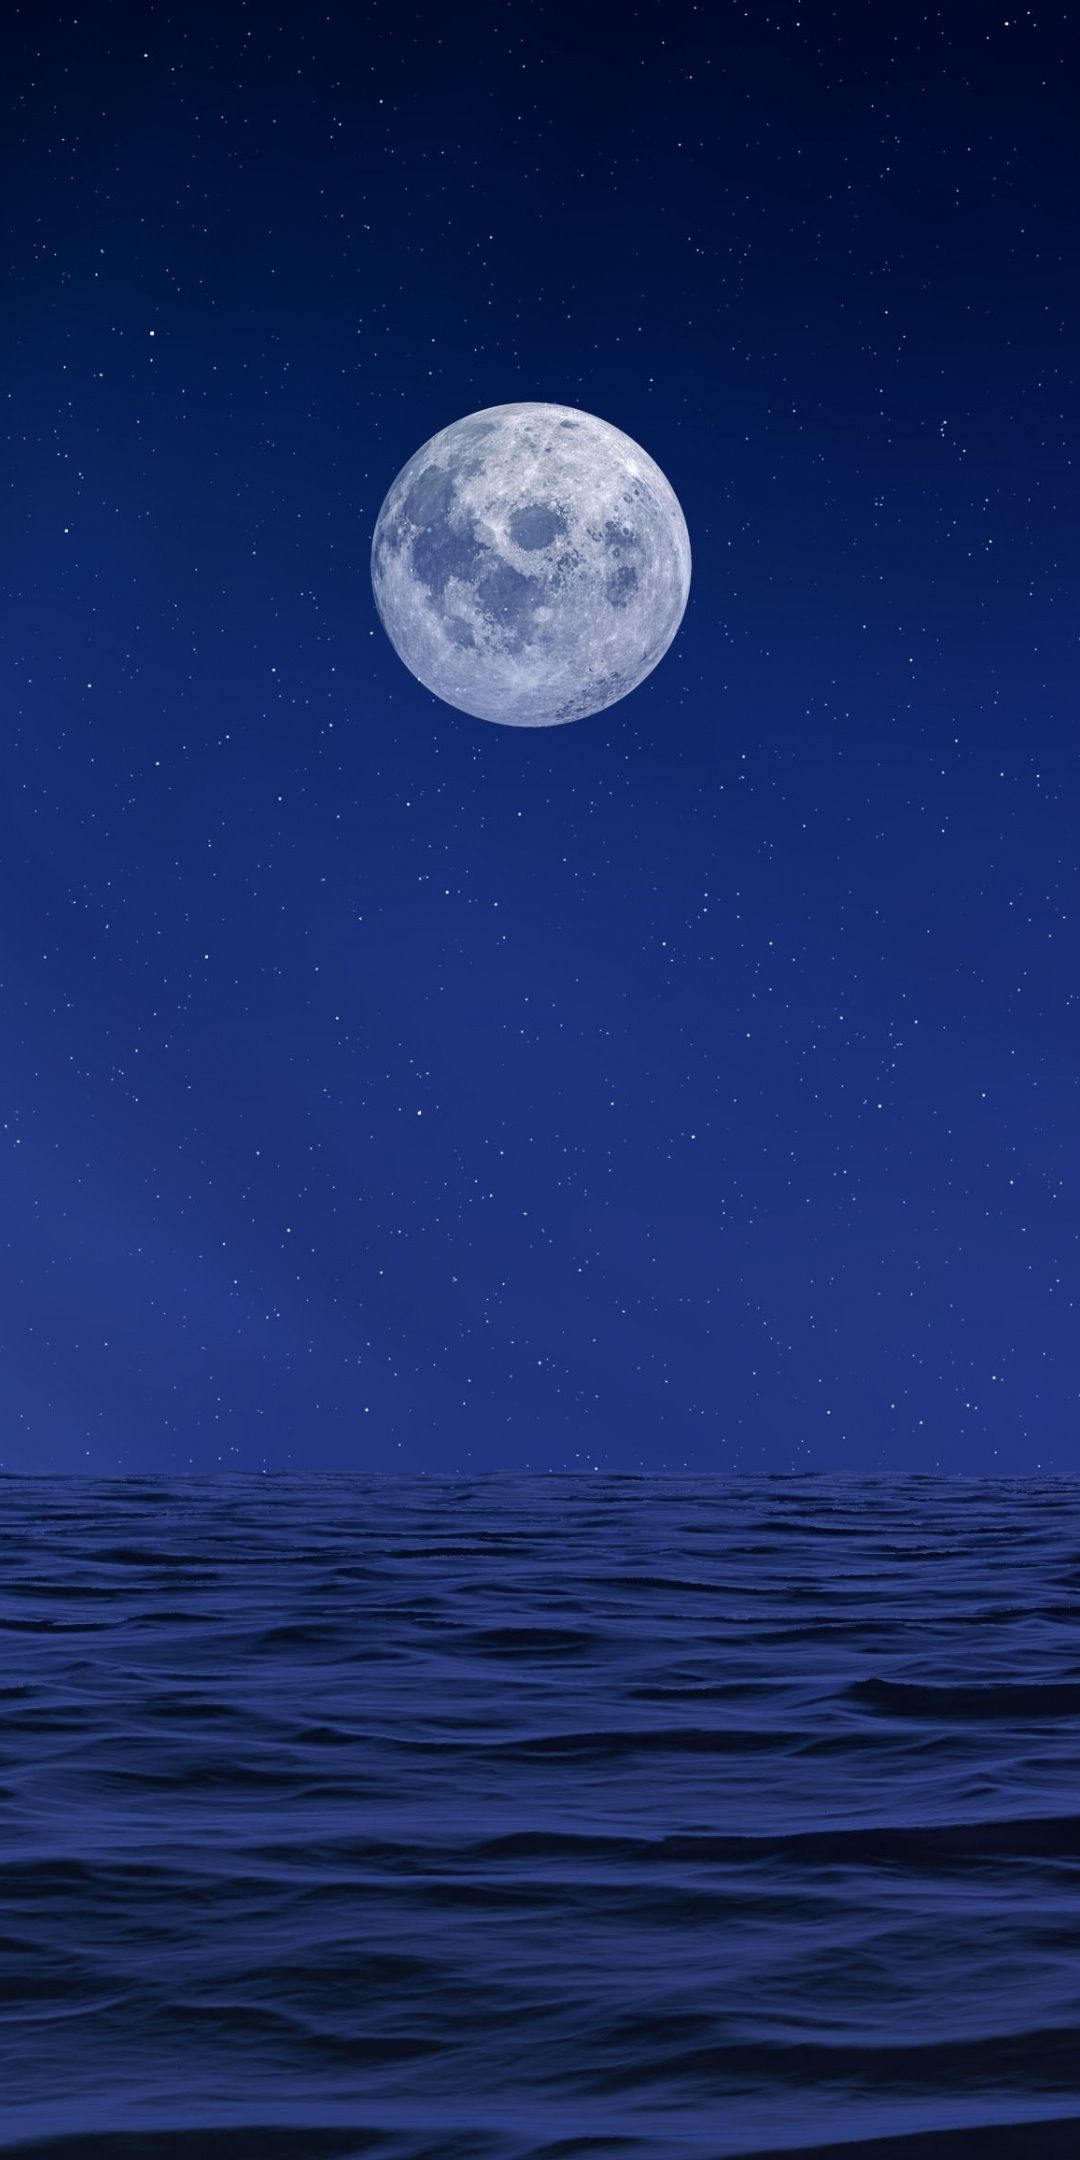 Moon Body Of Water Sea Night Artwork 1080x2160 Wallpaper